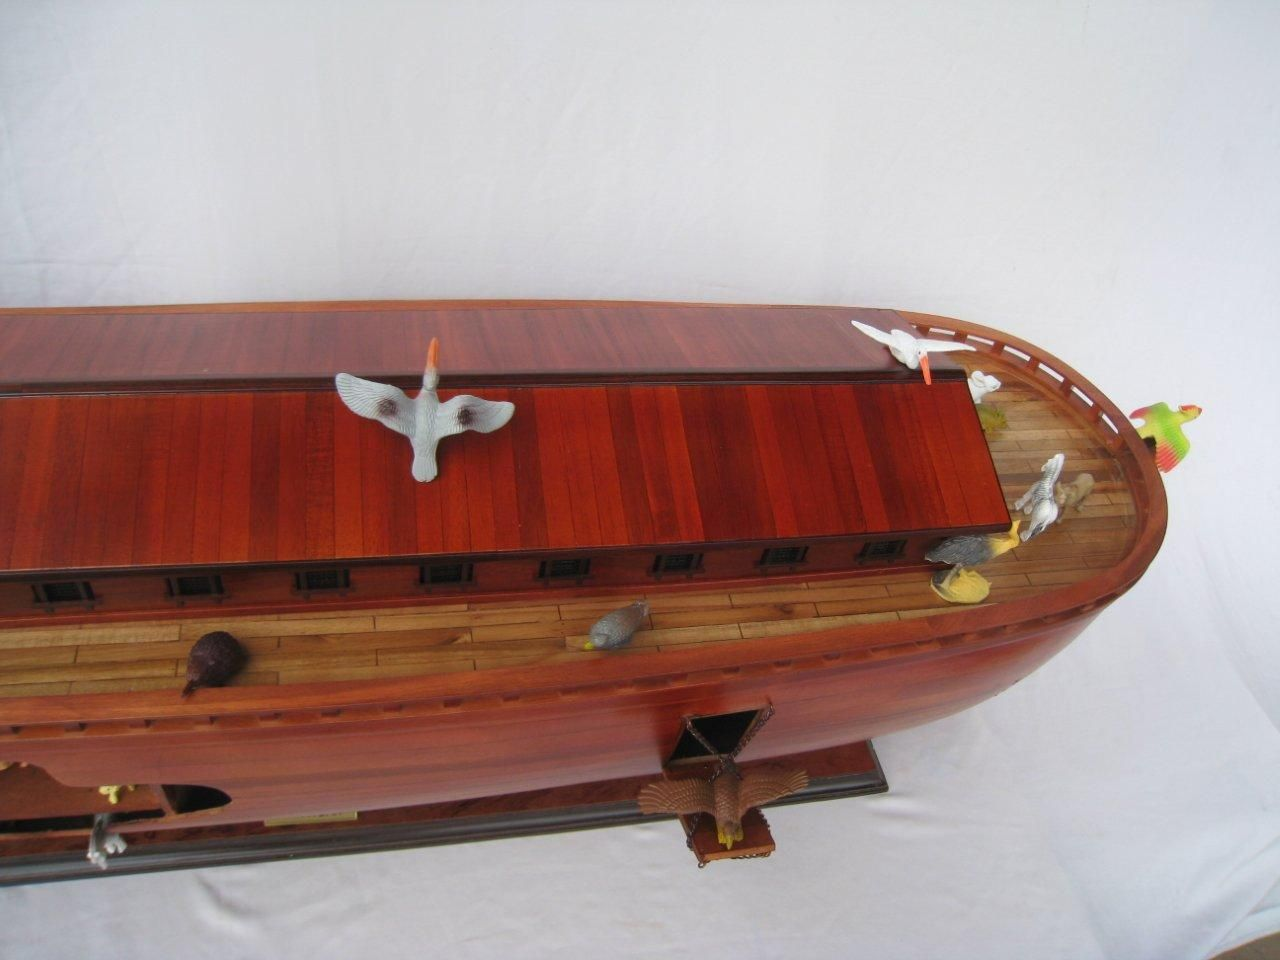 2043-12568-Noahs-Ark-Model-Boat